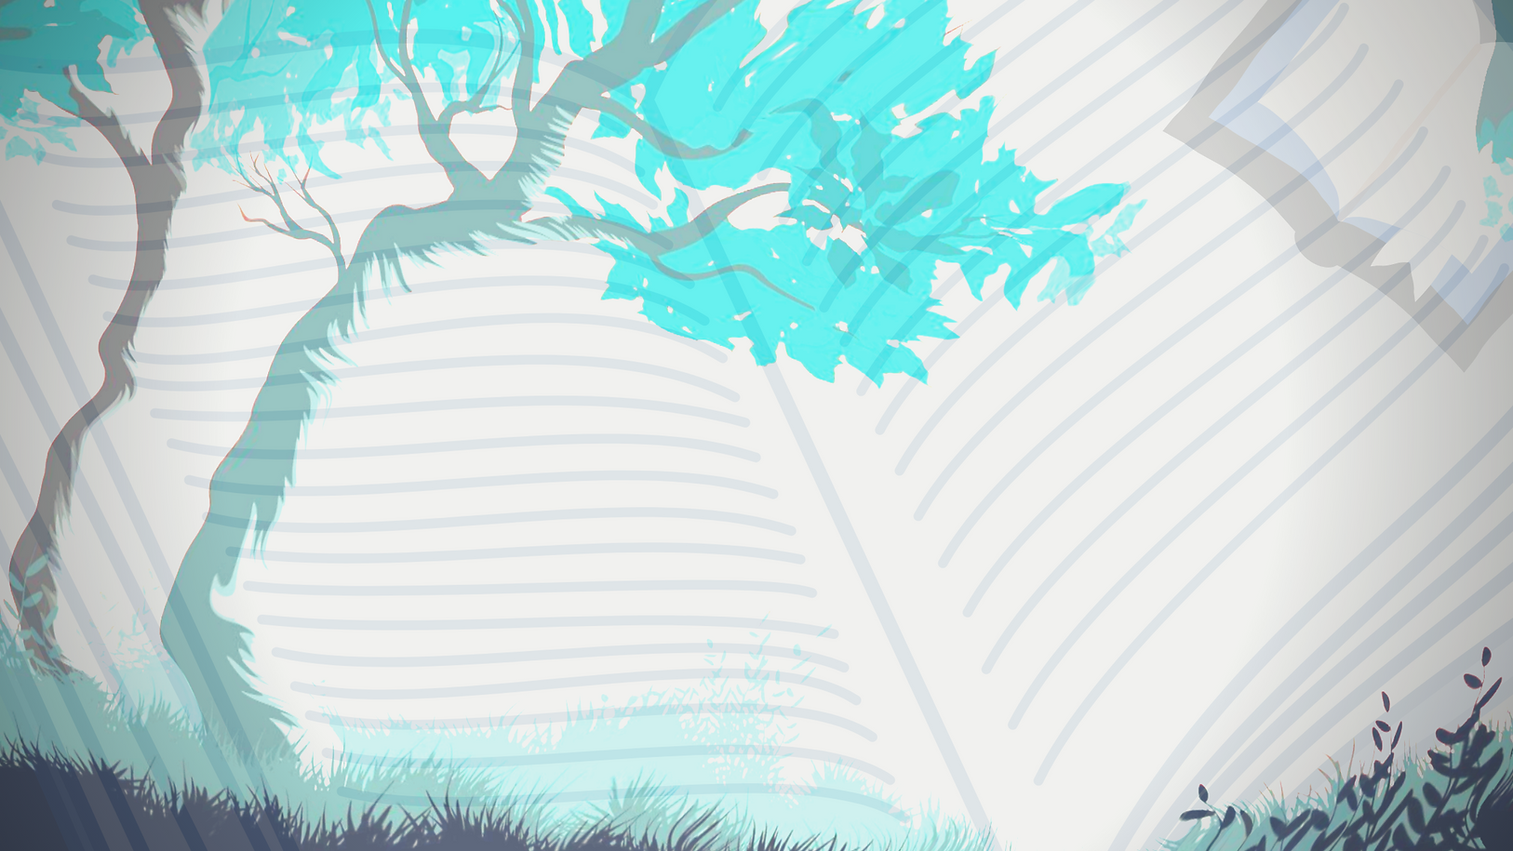 Background forest.png